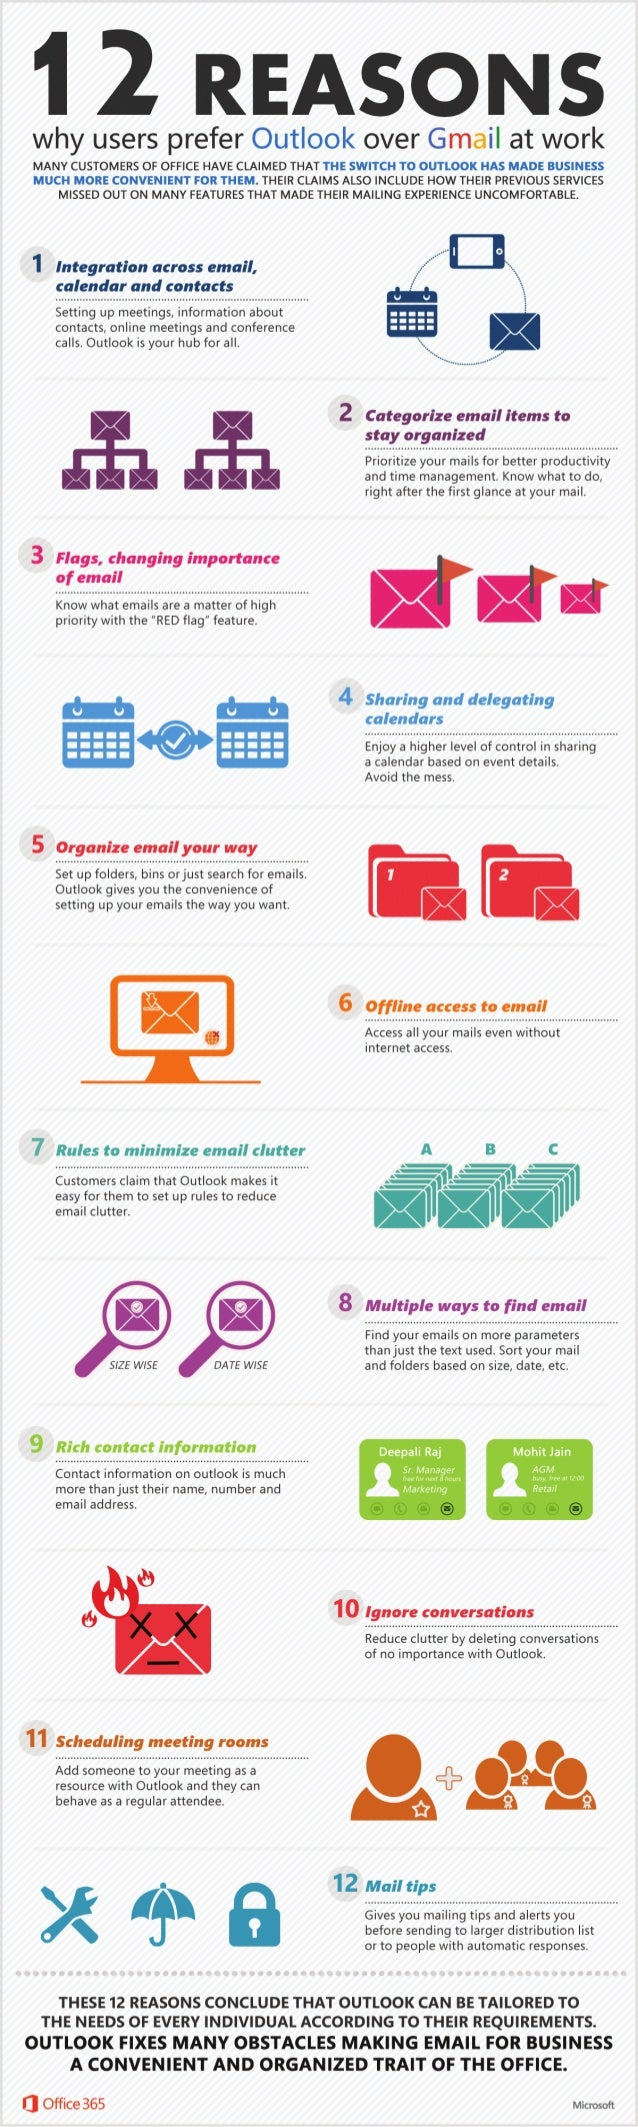 12 Reasons Why Users Prefer Outlook Over Gmail